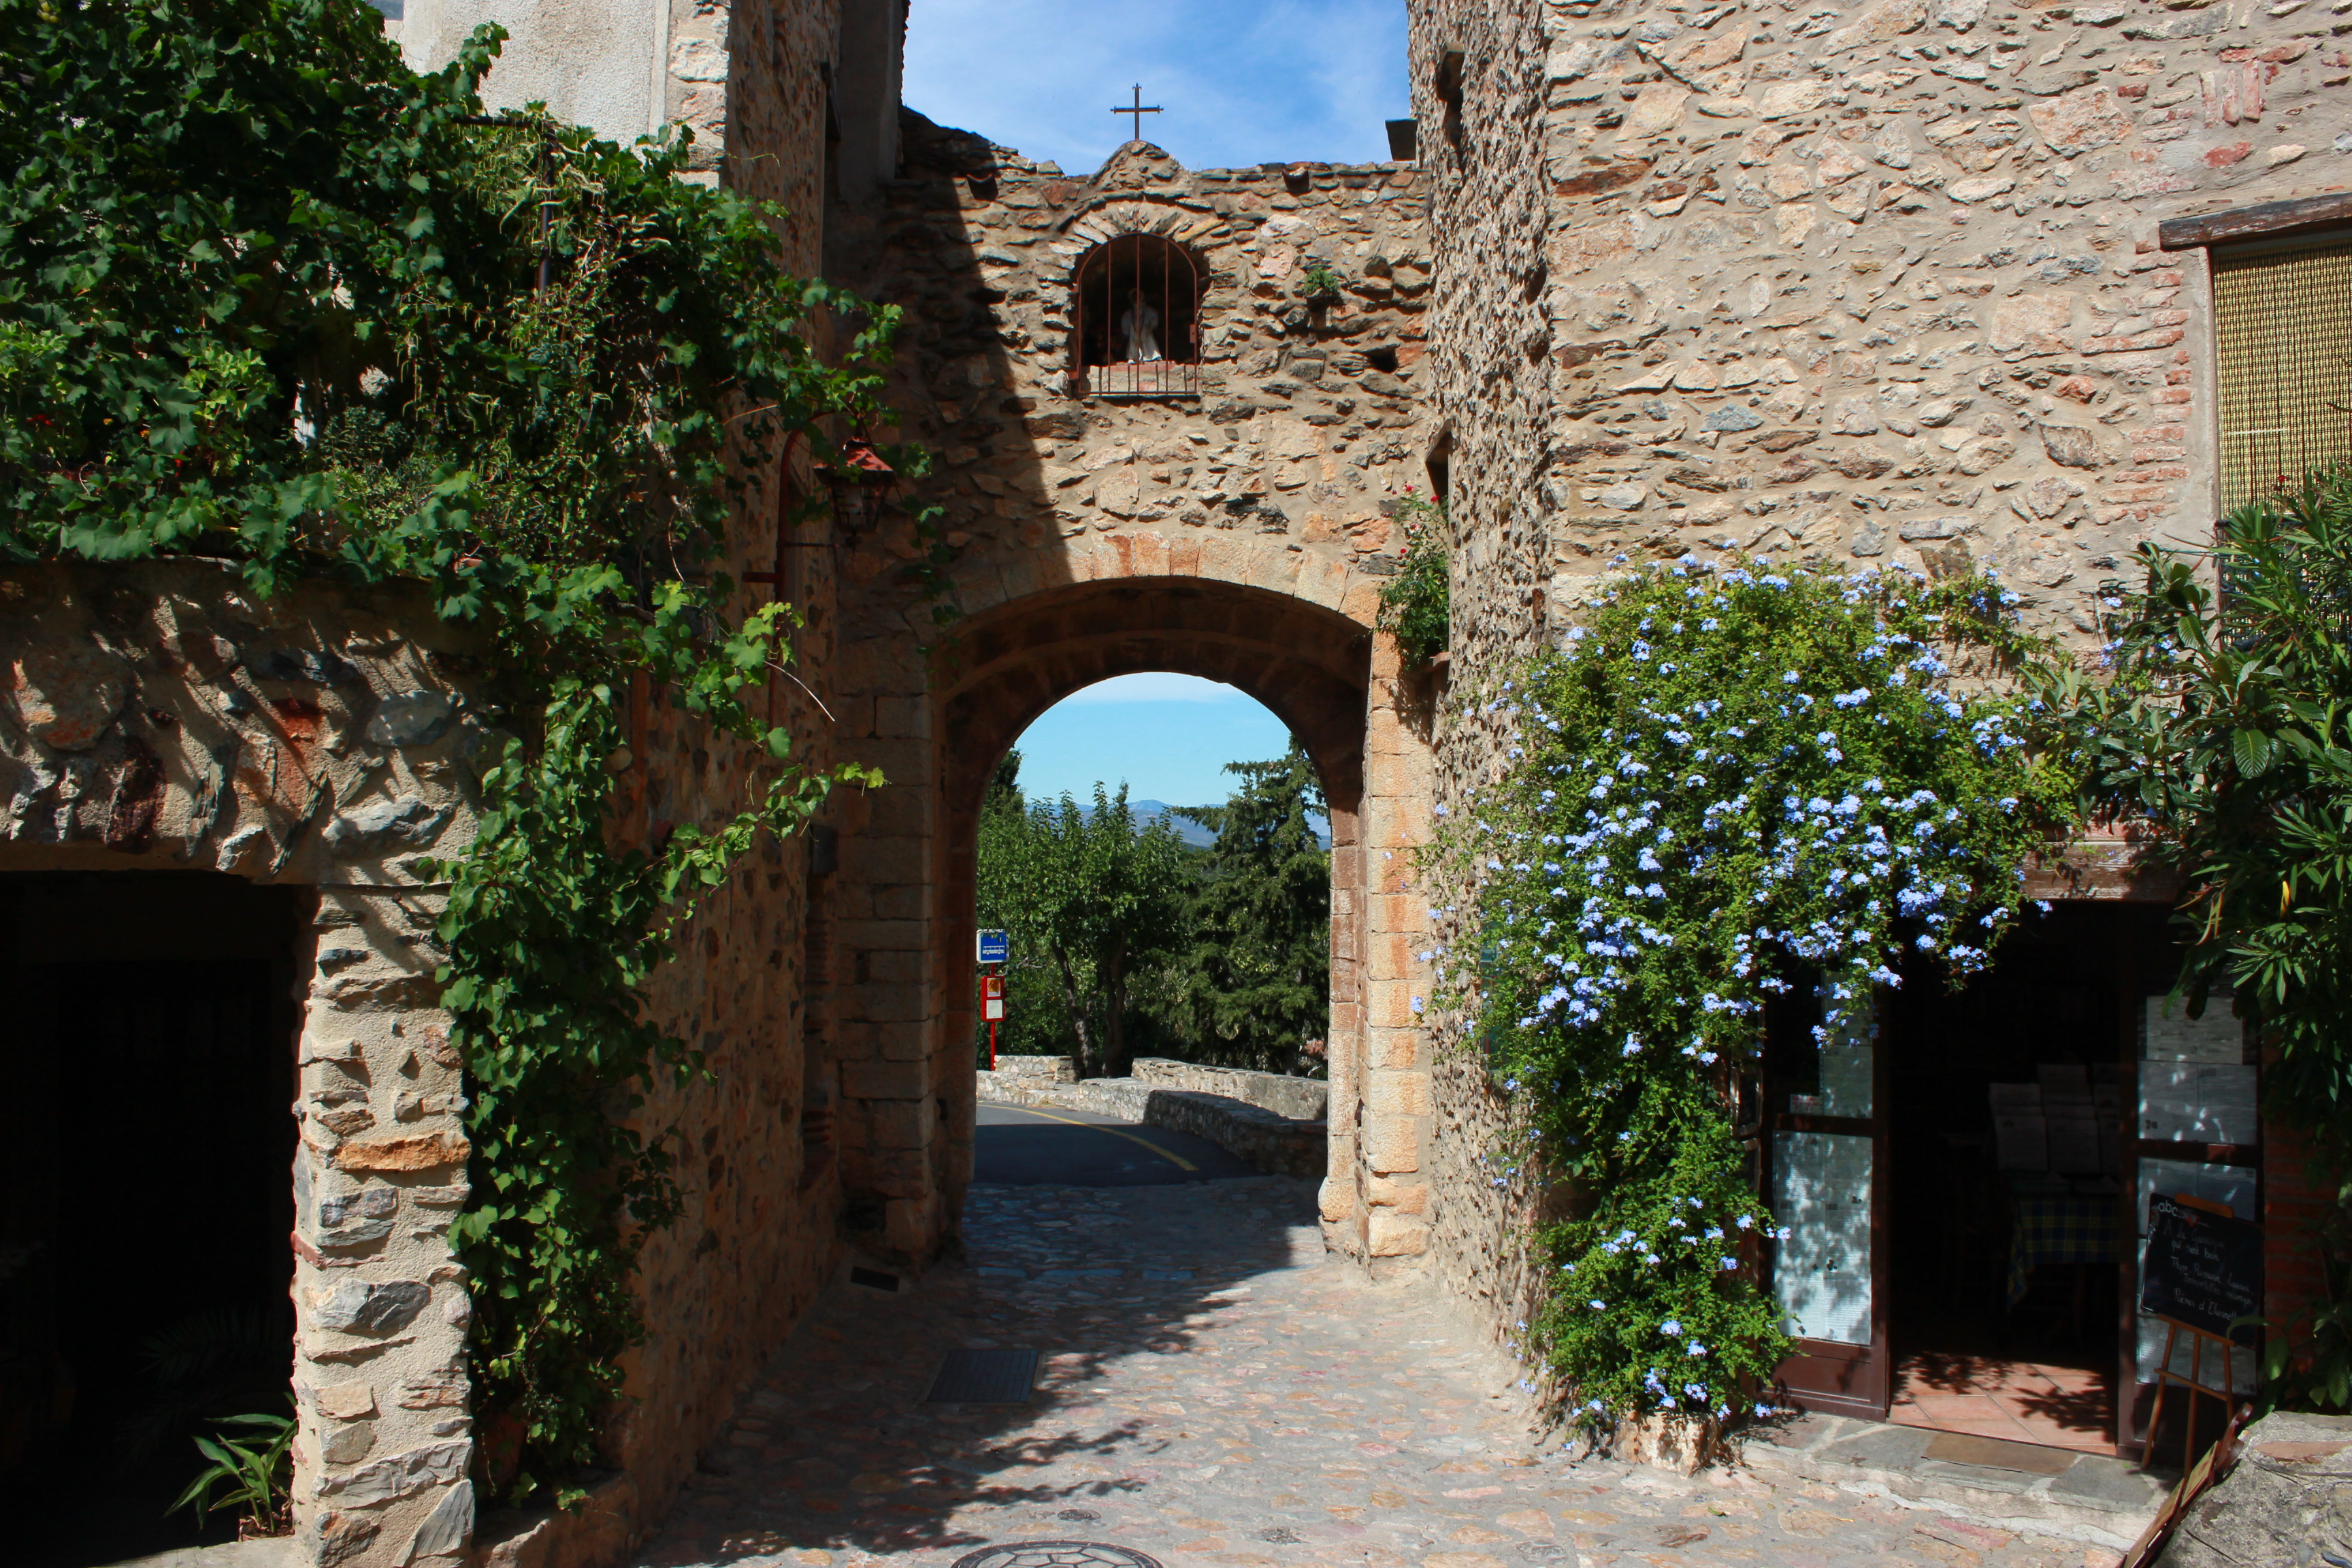 Castelnou_(66),_un_des_plus_beaux_village_de_France25.jpg